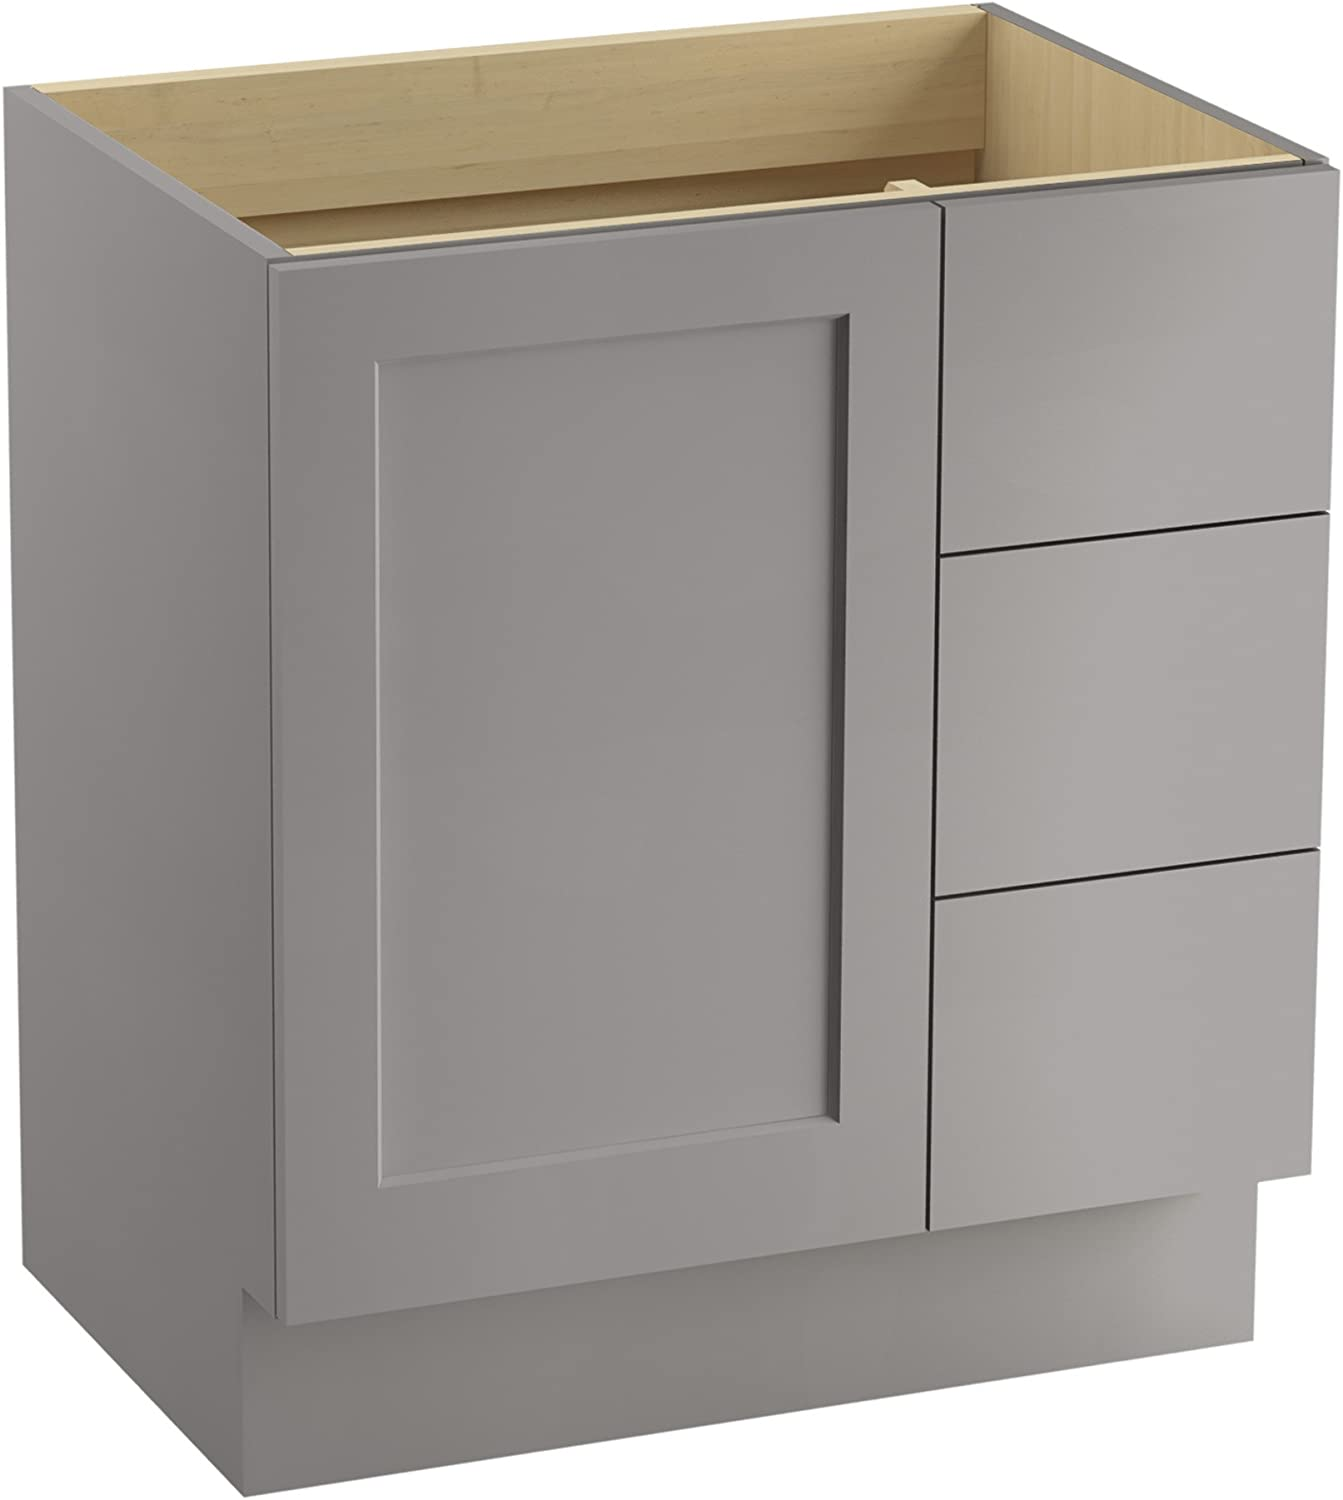 Kohler K 99530 Tkr 1wu Poplin Vanity With Toe Kick 1 Door 3 Drawers On Right Batiste Black 30